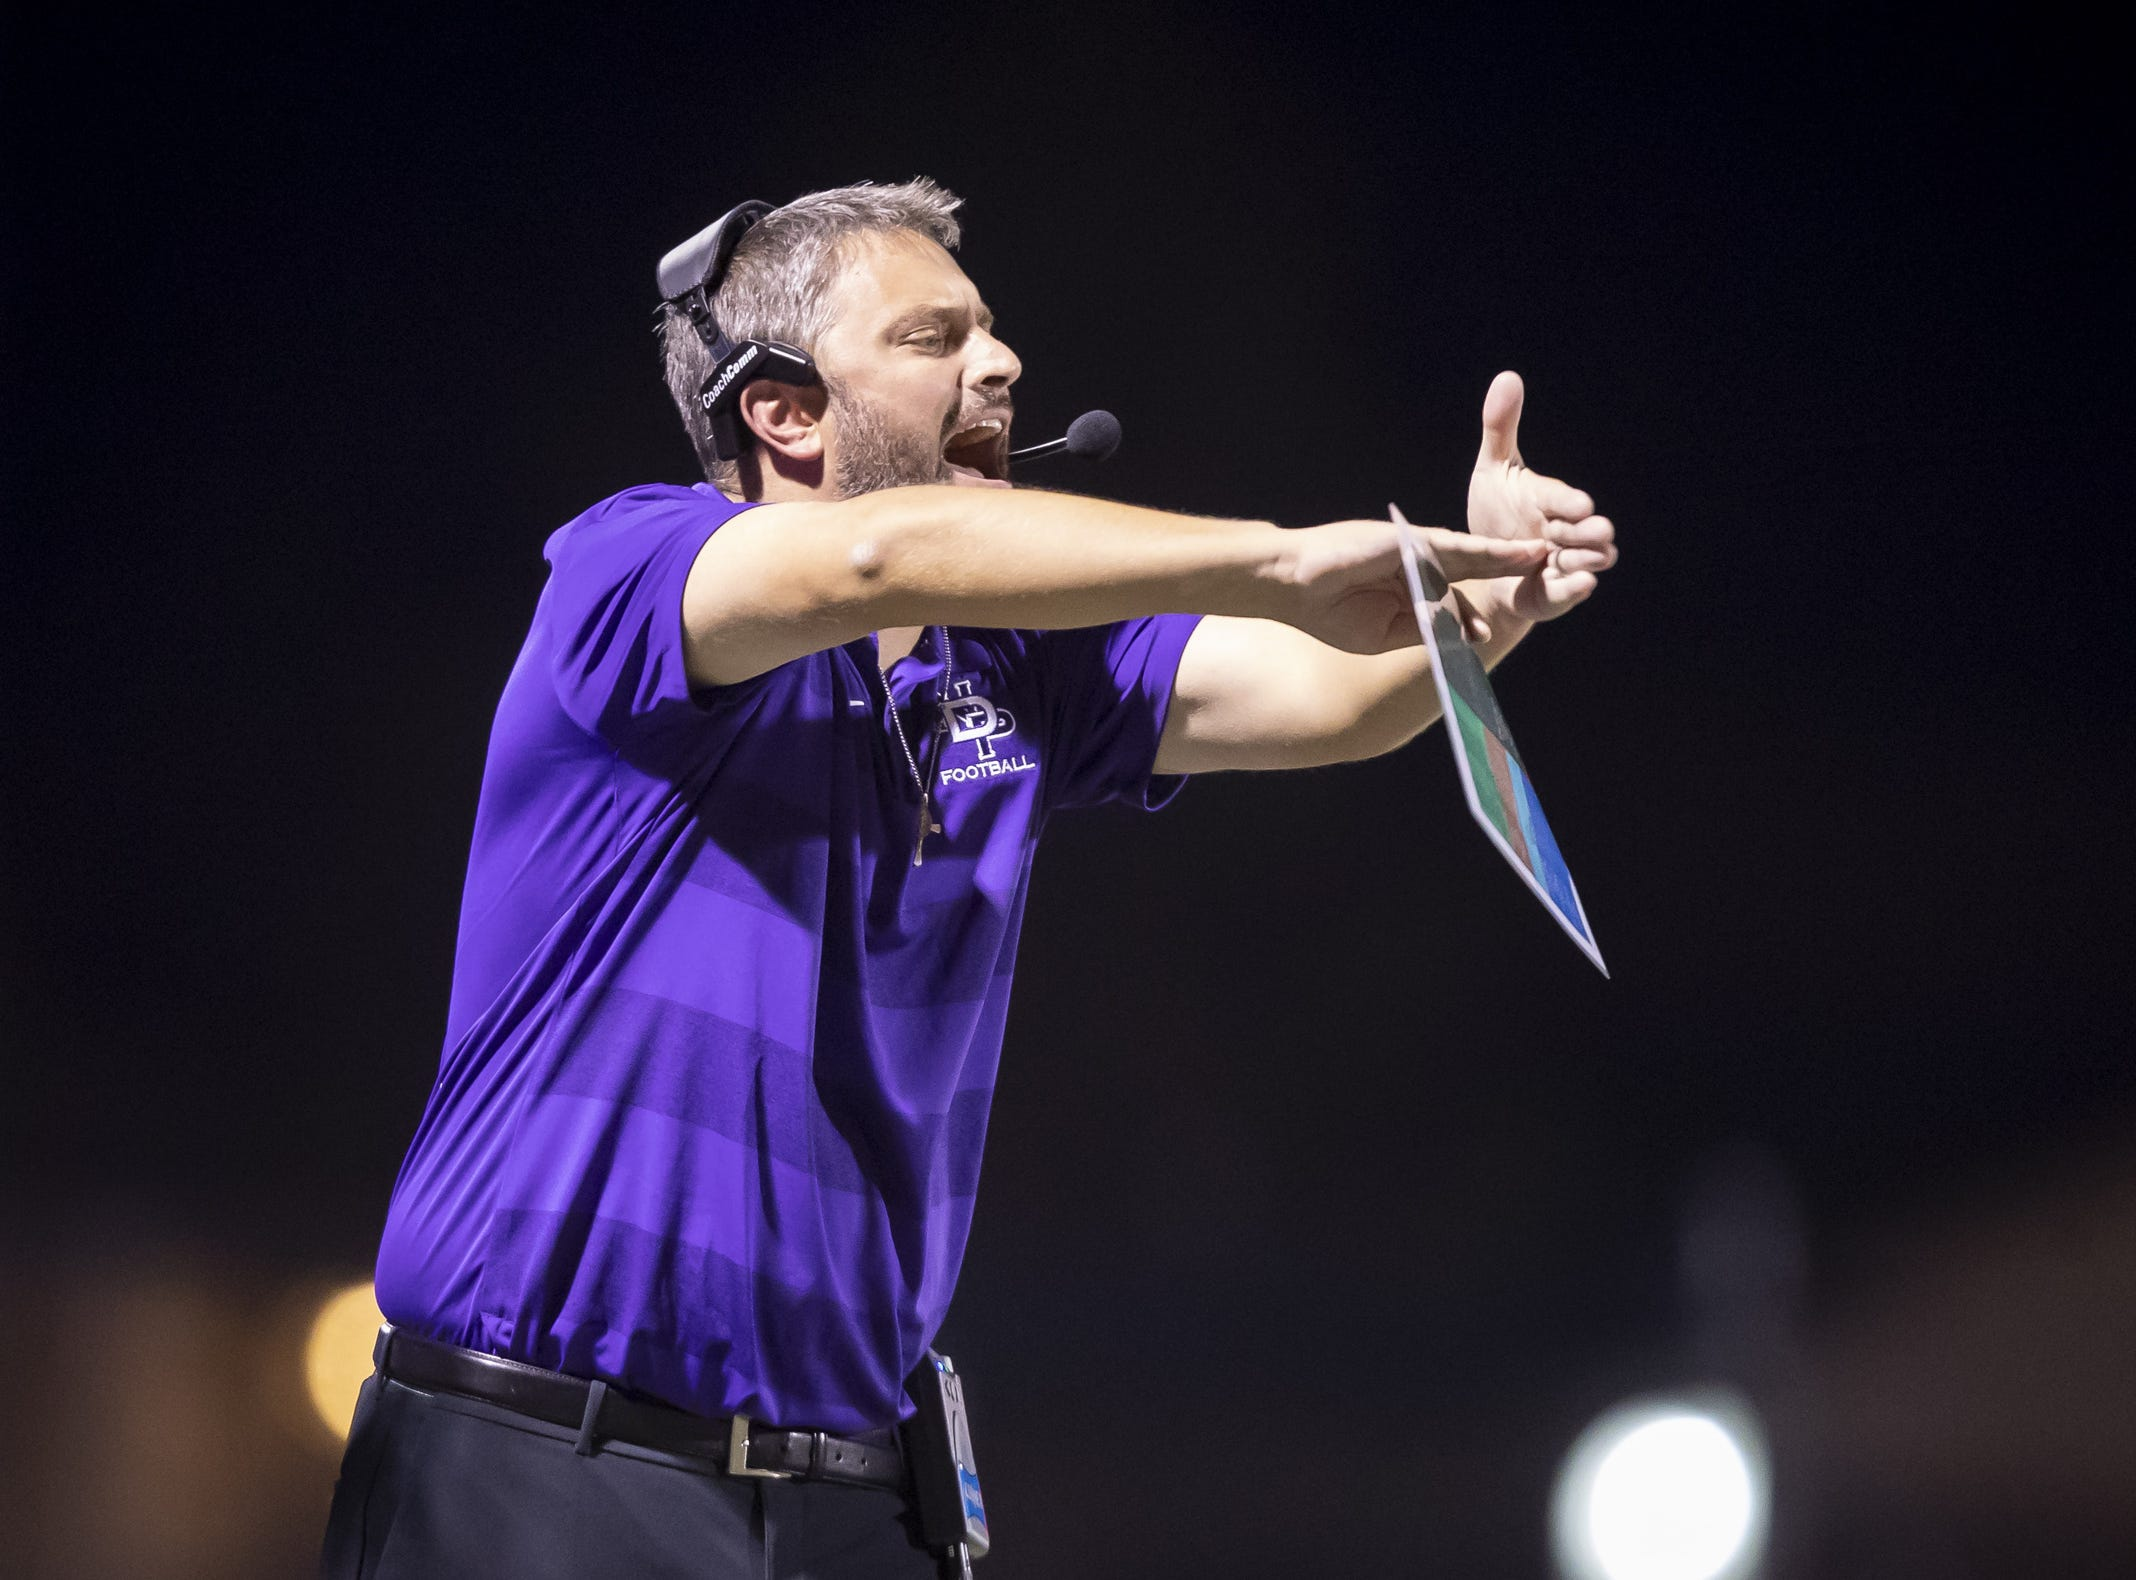 Head coach George Prelock of the Notre Dame Prep Saints calls a time-out during the game against the Horizon Huskies at Horizon High School on Friday, October 5, 2018 in Scottsdale, Arizona. #azhsfb